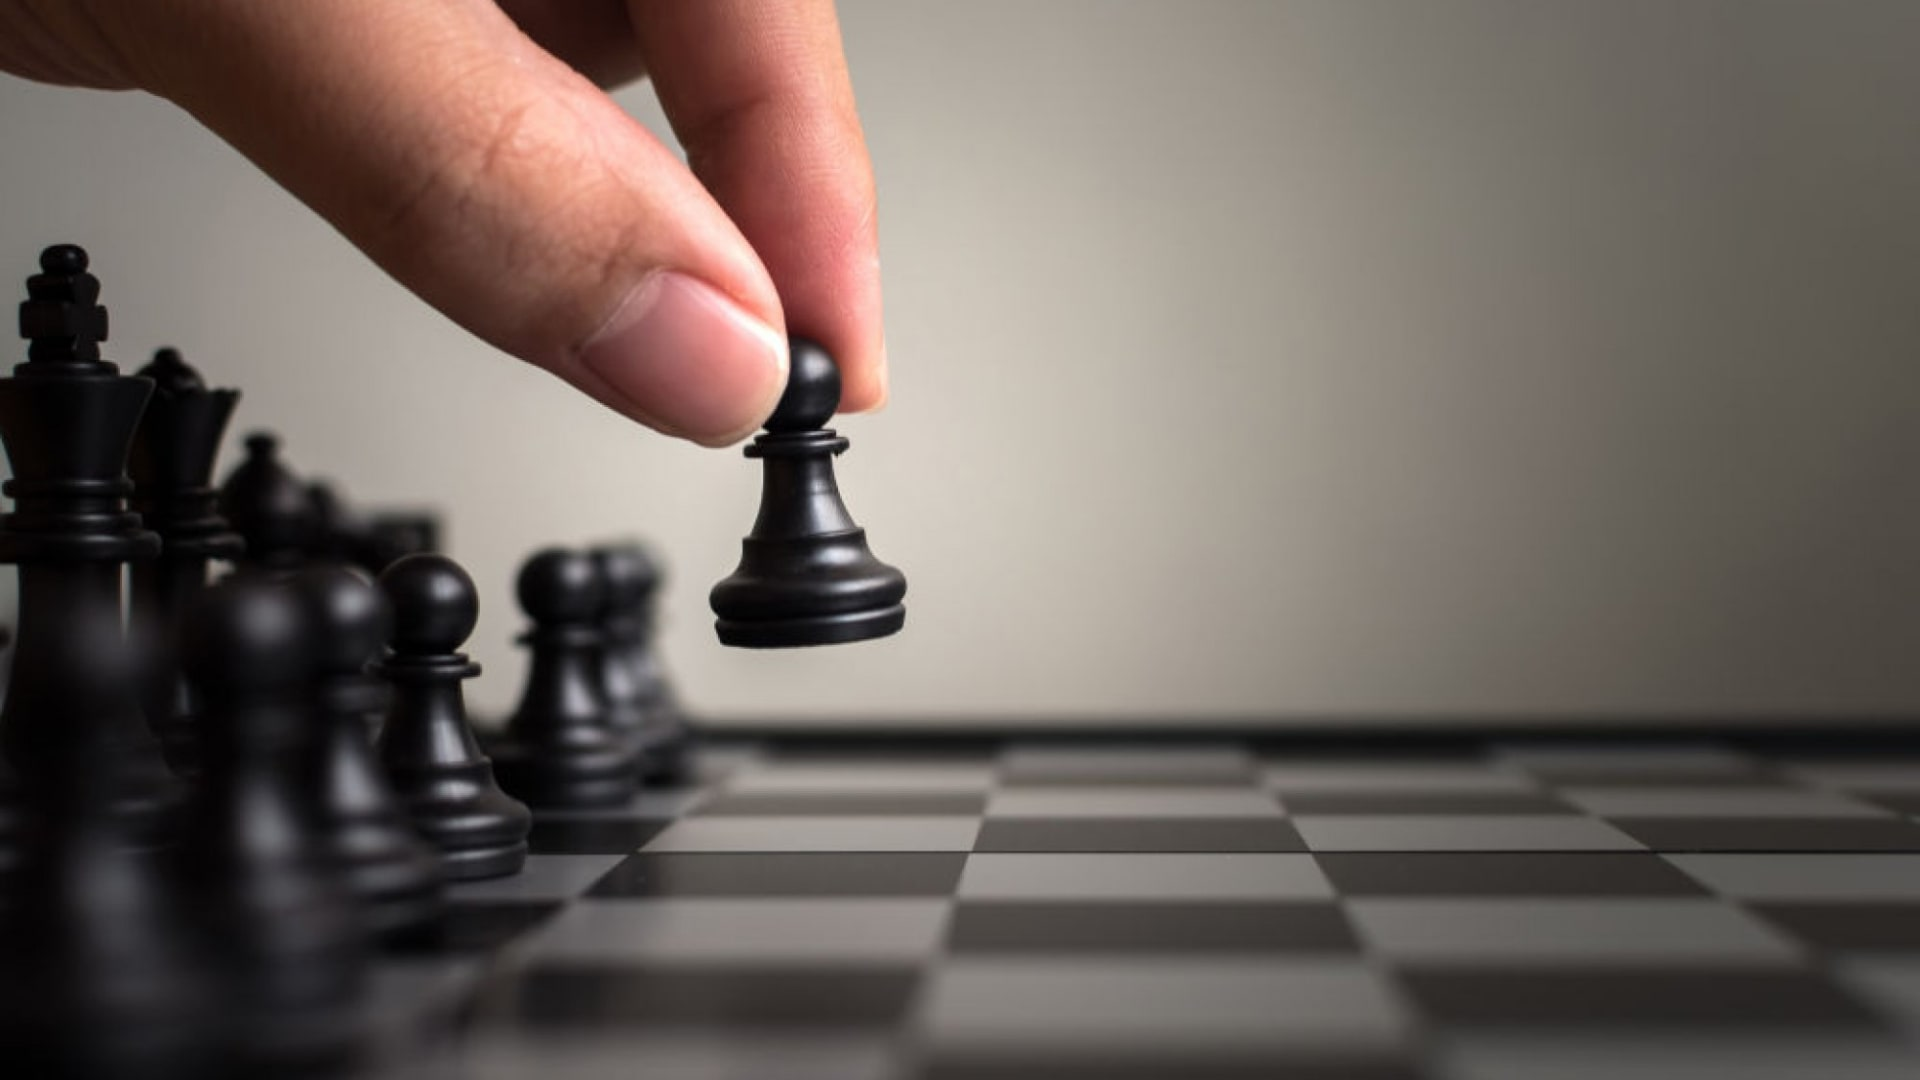 5 Ways Business Strategy Will Change Before 2025